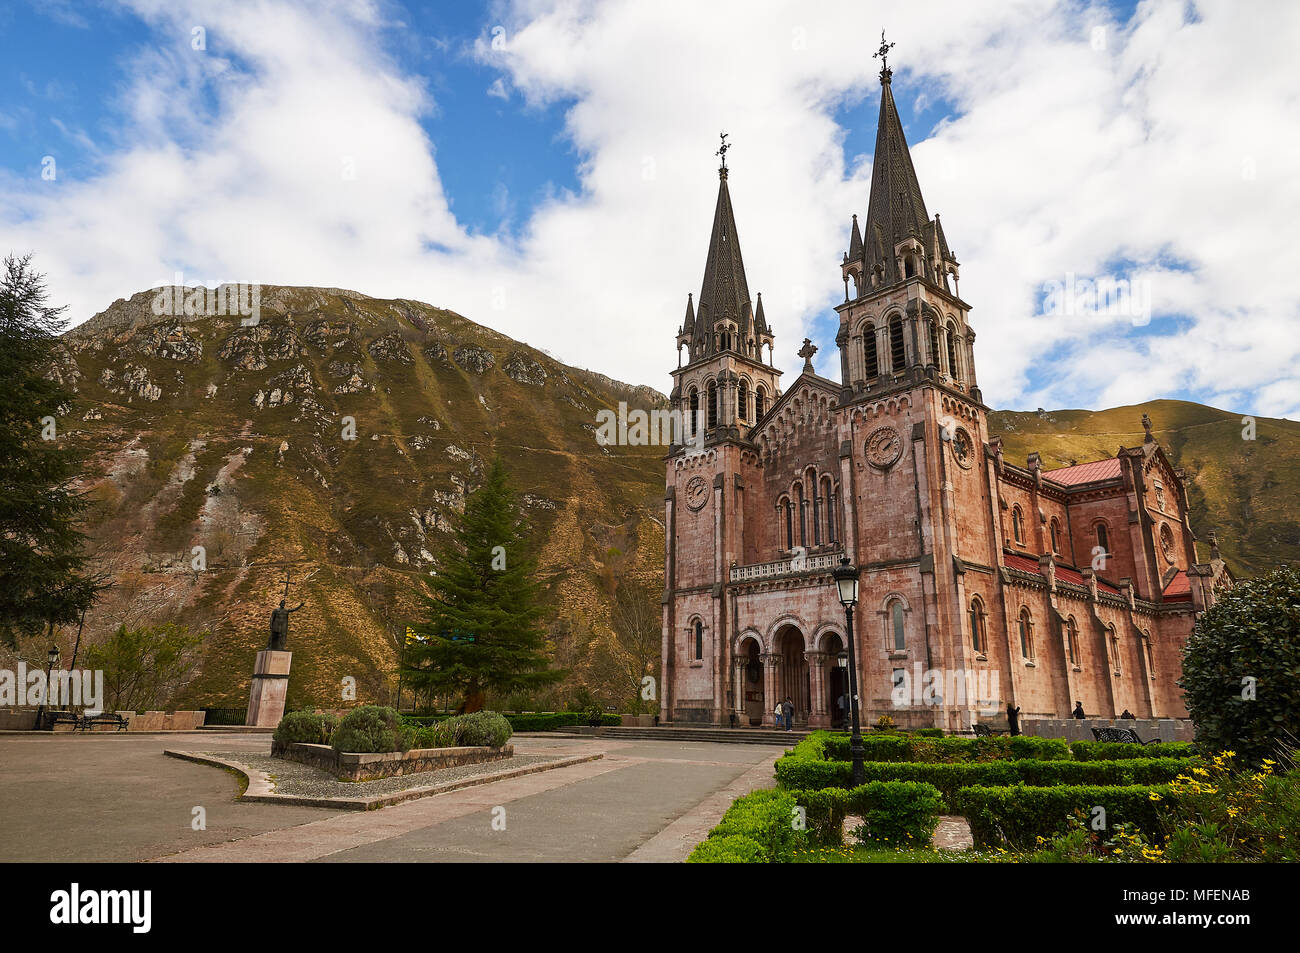 Scenic view of the Basílica de Santa María la Real de Covadonga in Cangas de Onís (Picos de Europa National Park, Asturias, Spain) - Stock Image